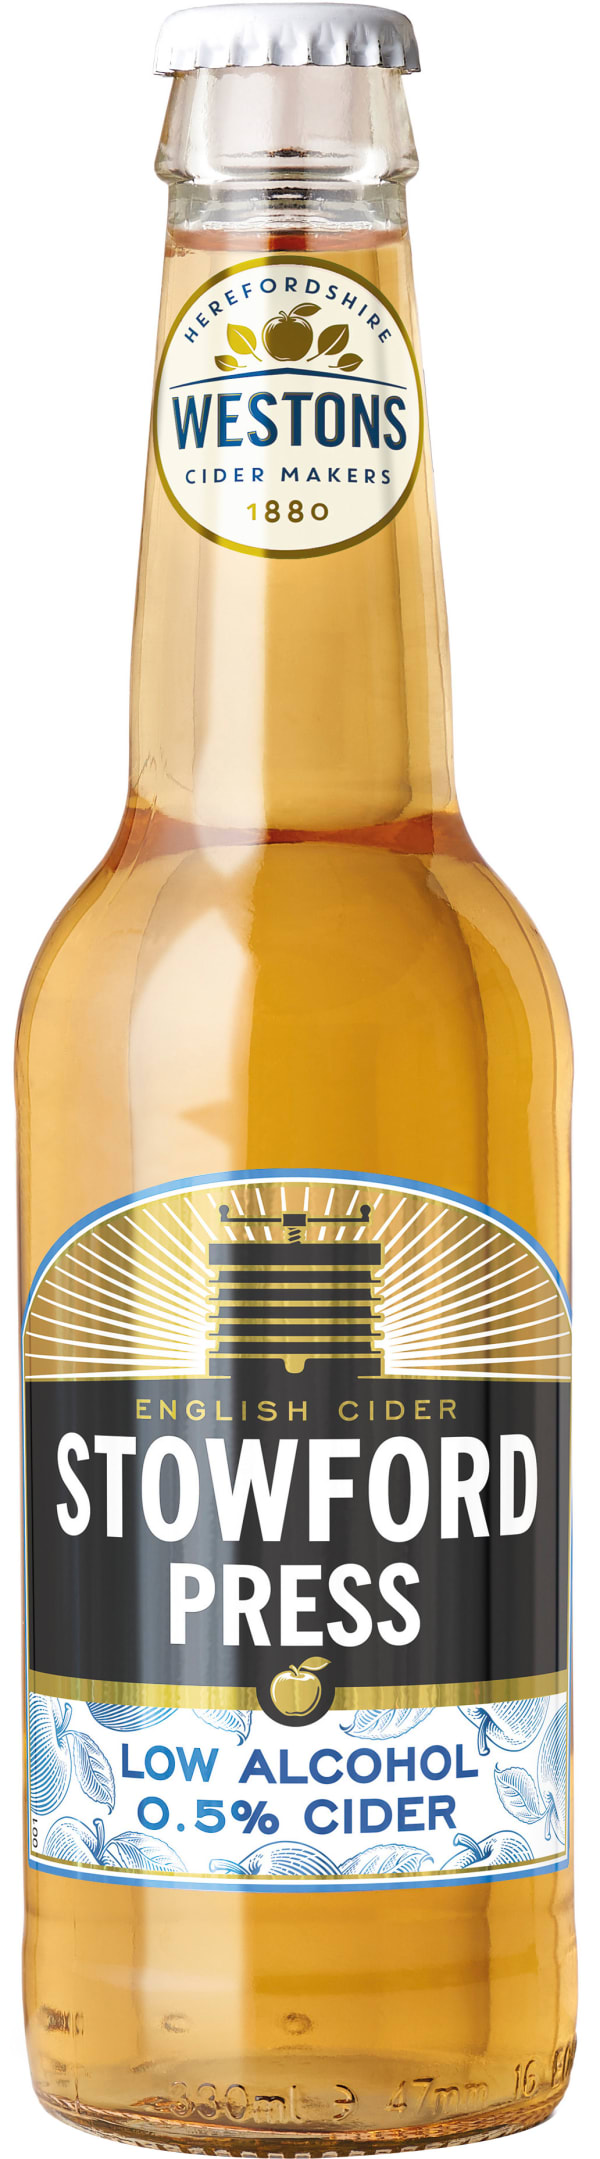 Stowford Press Low Alcohol Cider